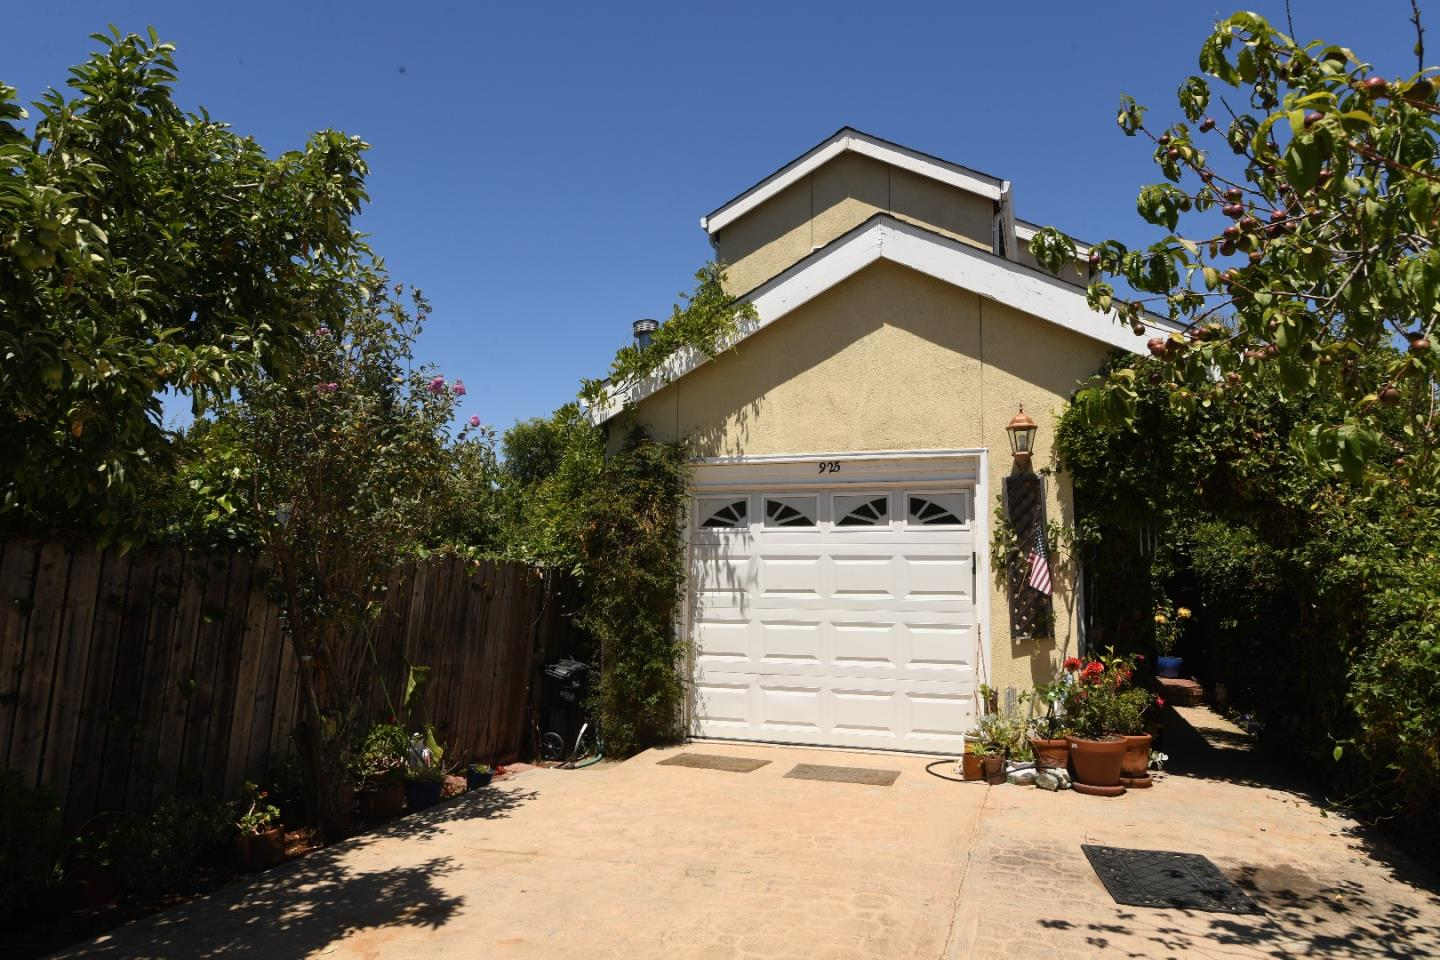 Additional photo for property listing at 925 Junipero Avenue  Redwood City, カリフォルニア 94061 アメリカ合衆国